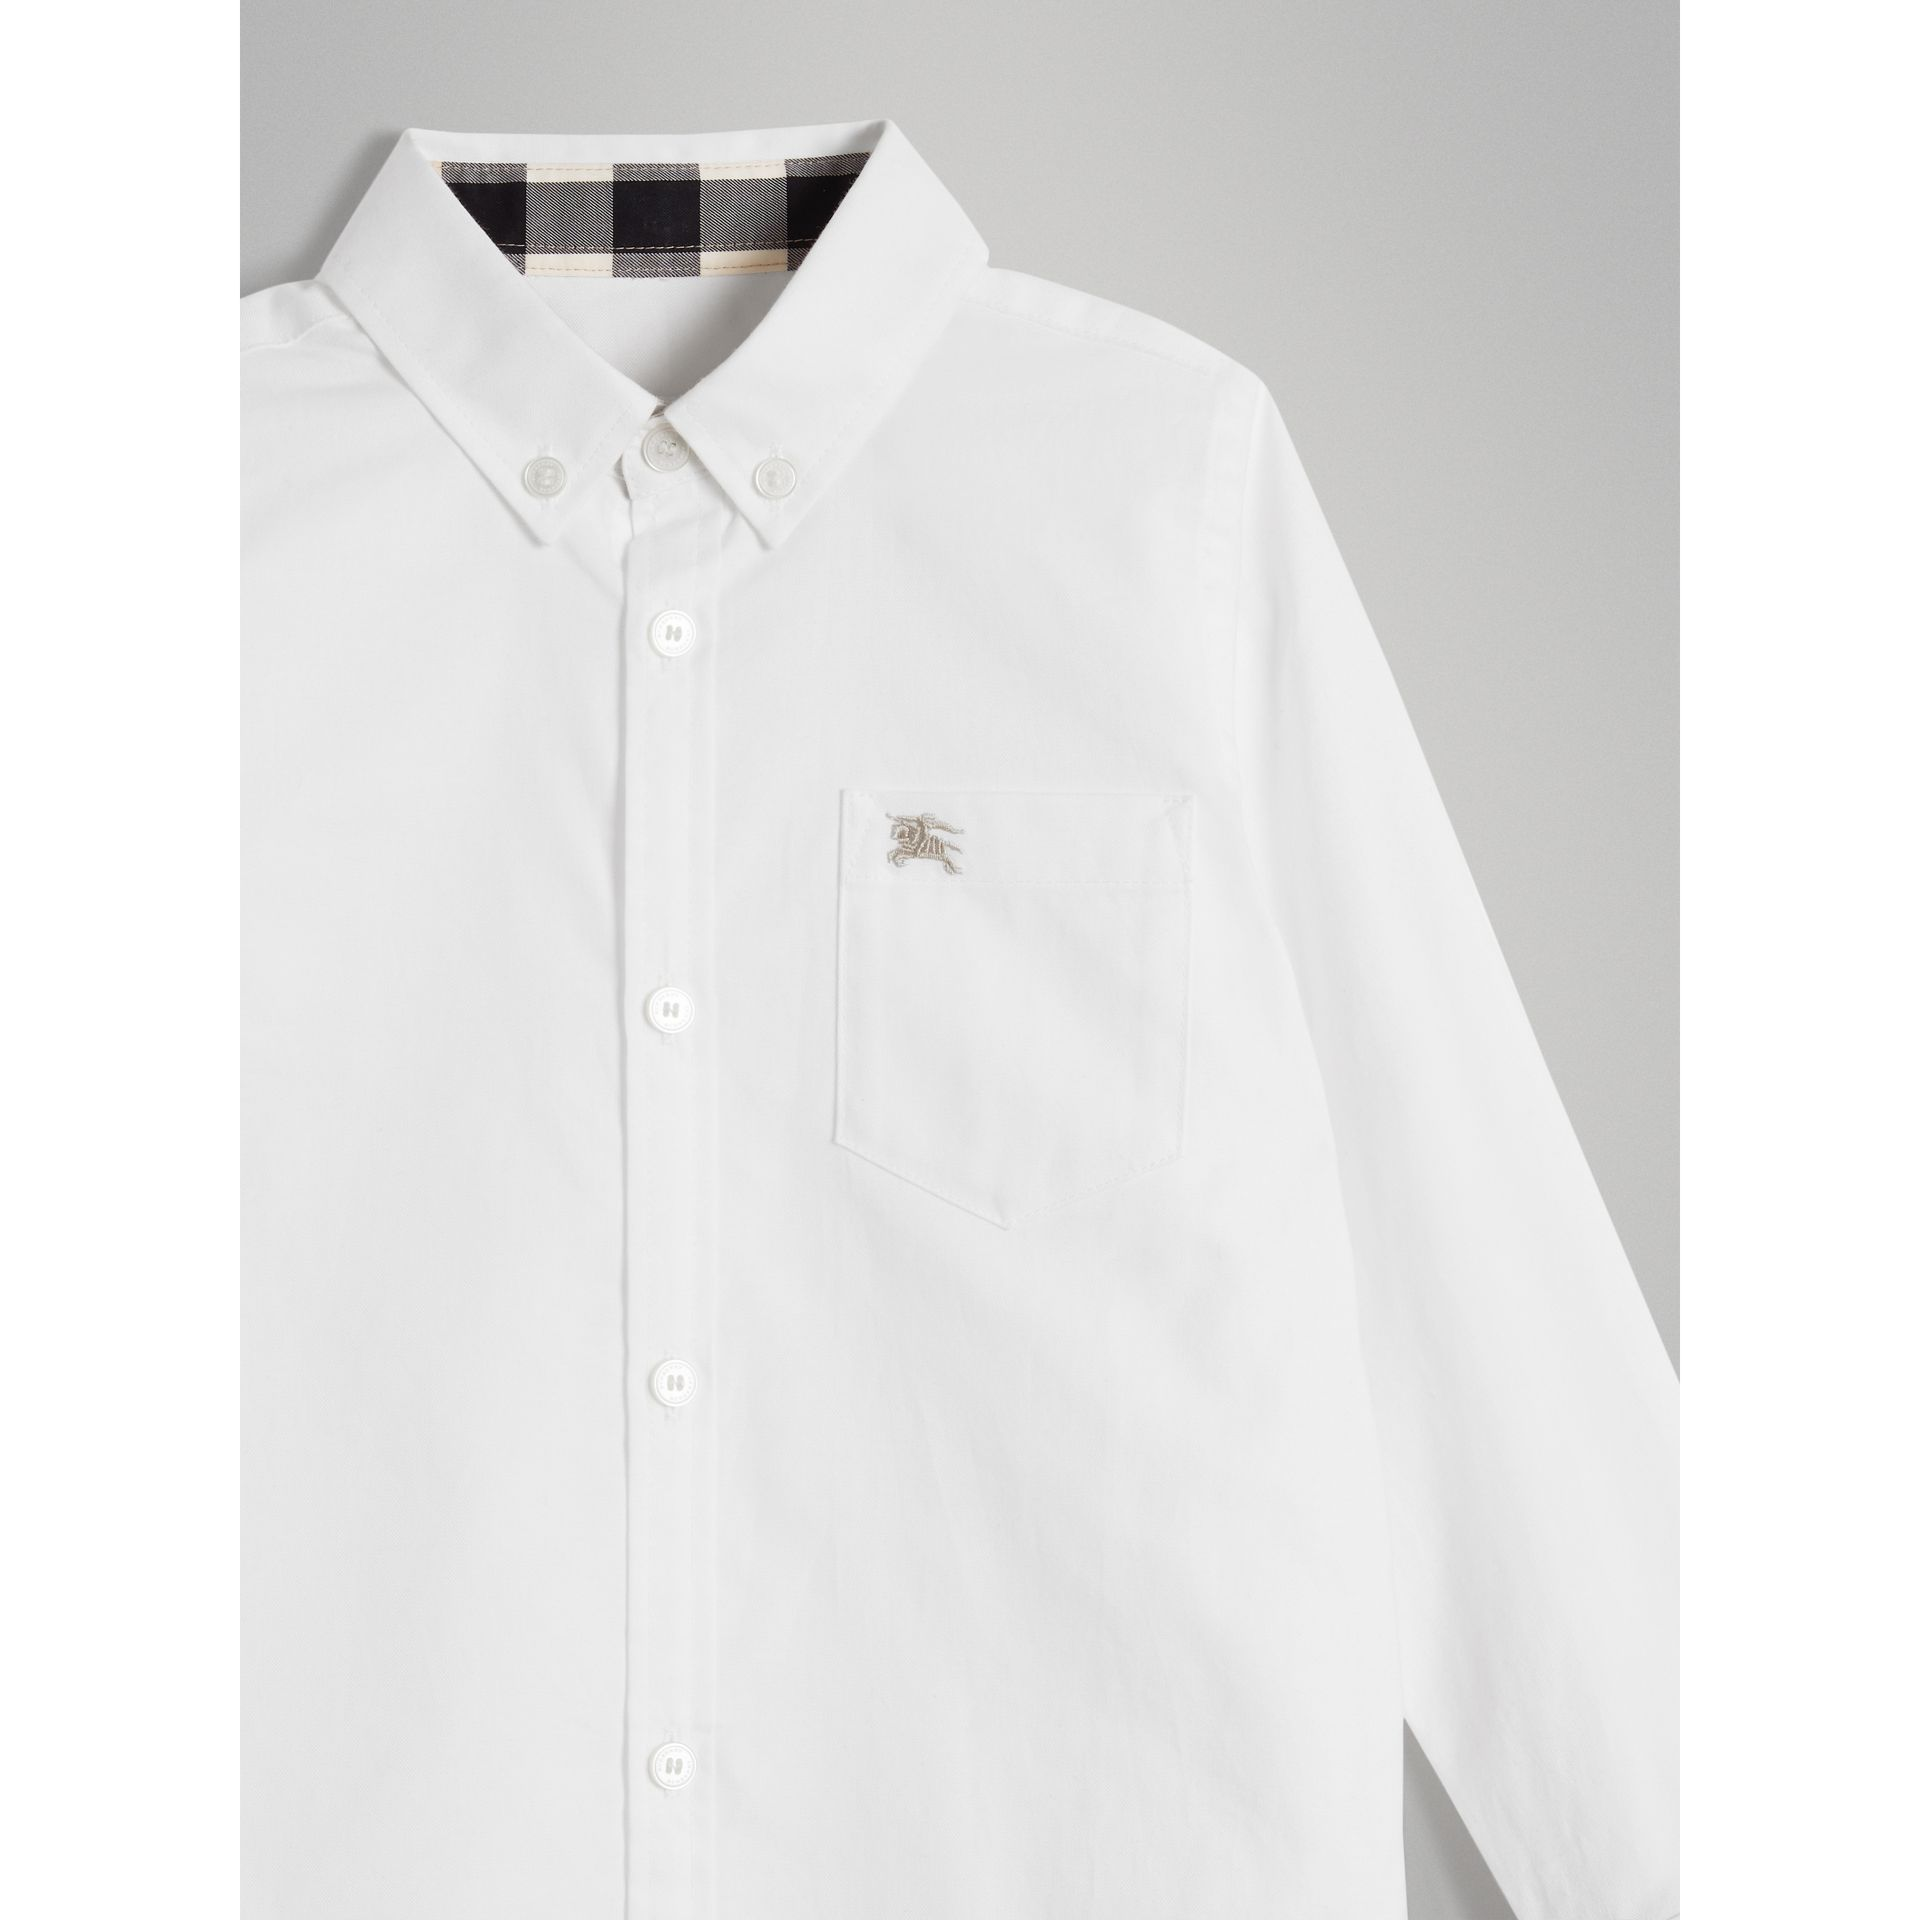 Classic Oxford Shirt in White | Burberry - gallery image 4